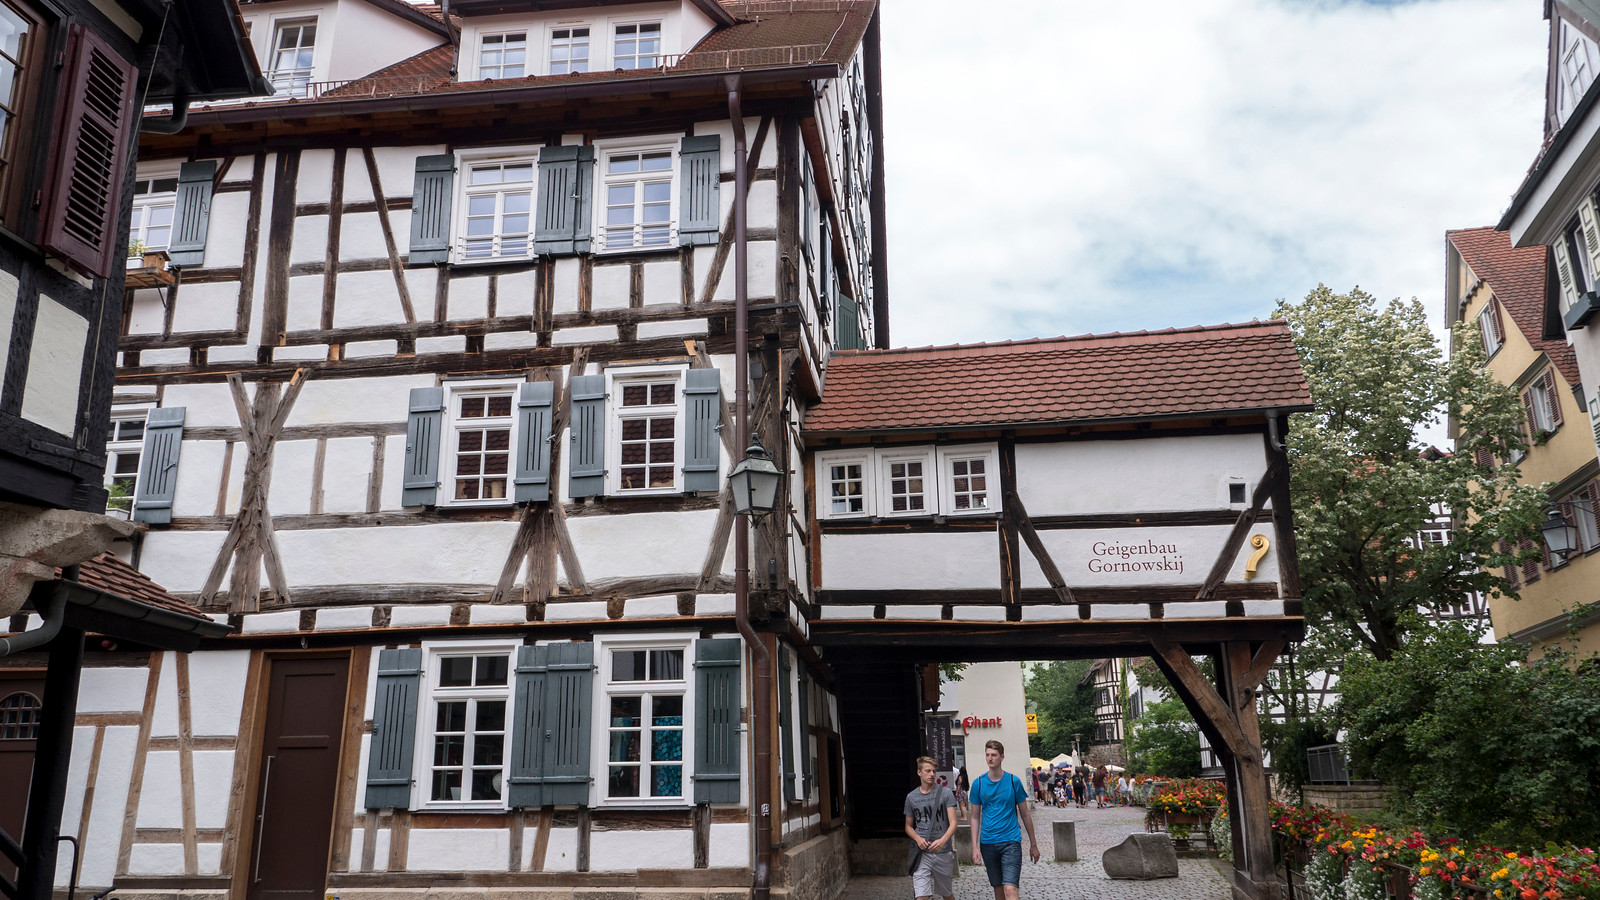 Things to do in Tubingen Germany - HalfTimbered House in Tubingen